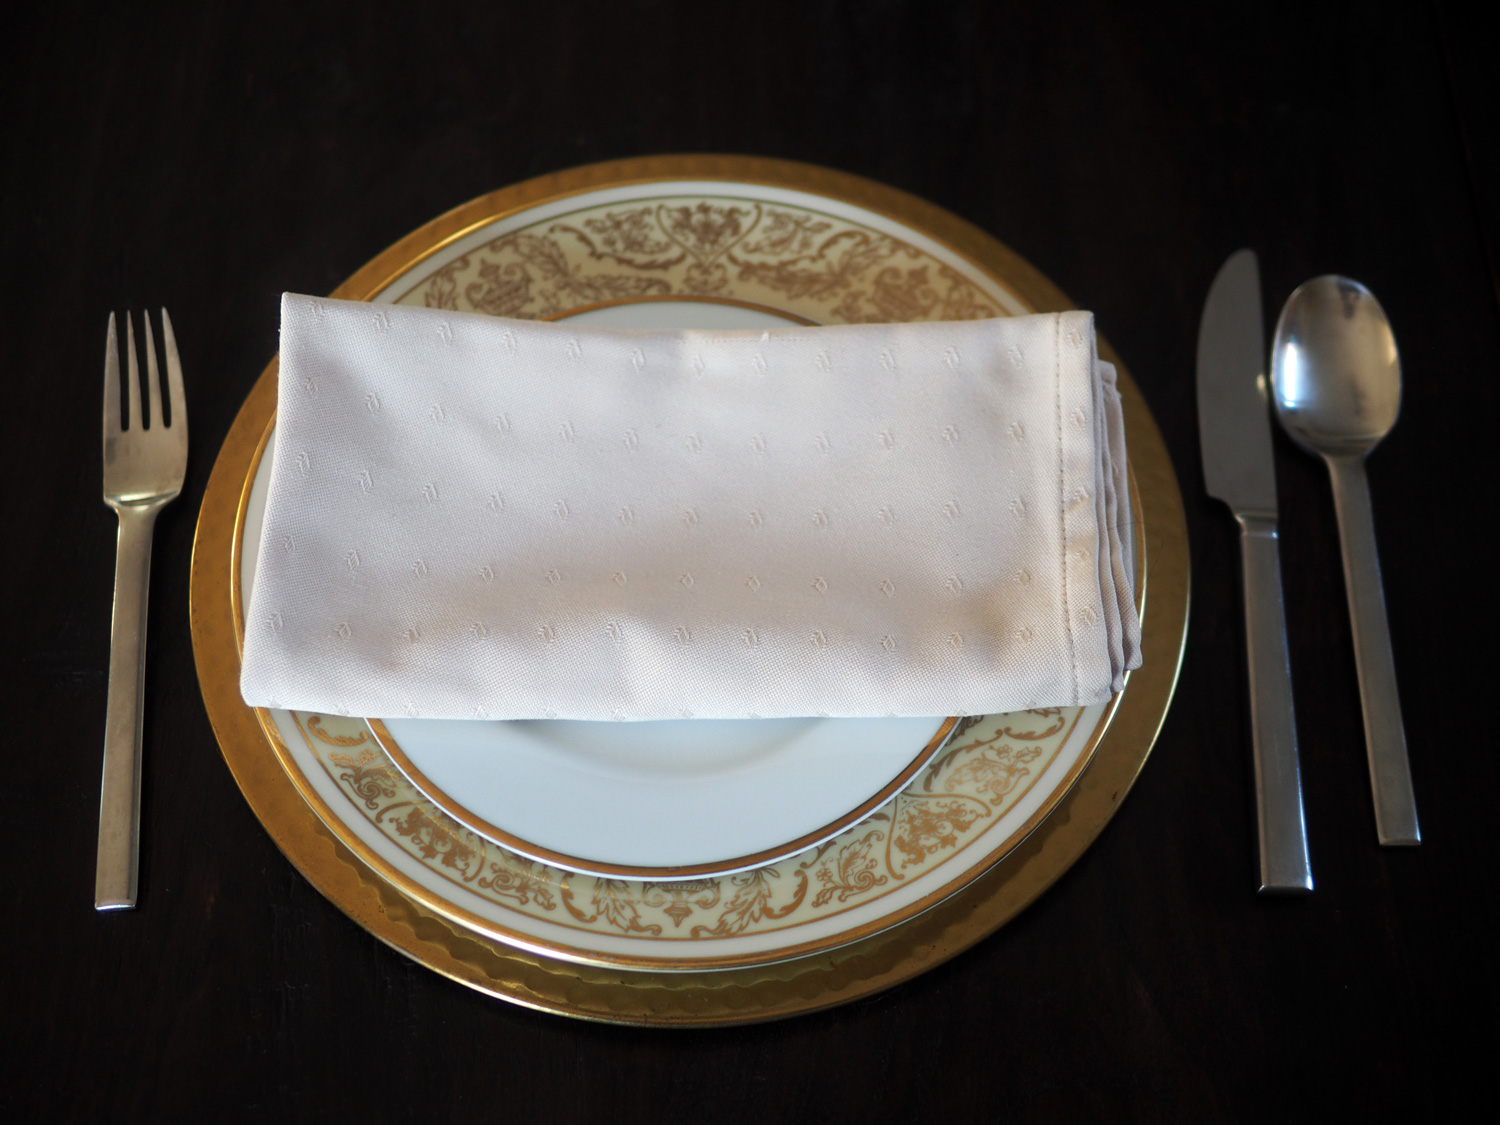 Is there anything easier than folding a napkin and placing it in the middle of the plate. I think not. But we can pump it up. Read on...